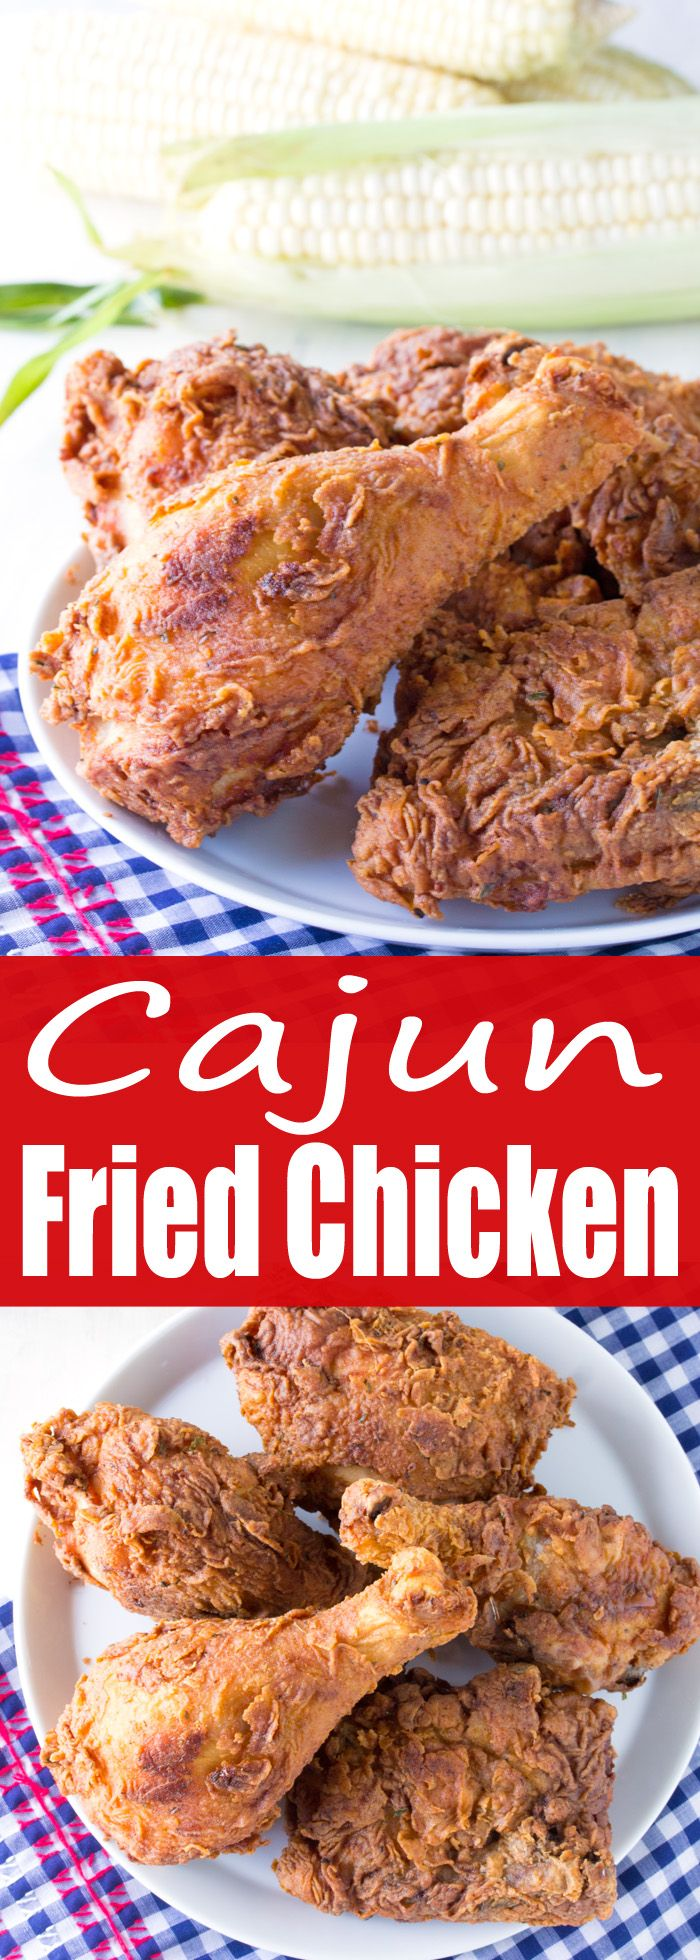 Cajun Fried Chicken Cajun Fried Chicken Cajun Fries Cooking Chicken Wings